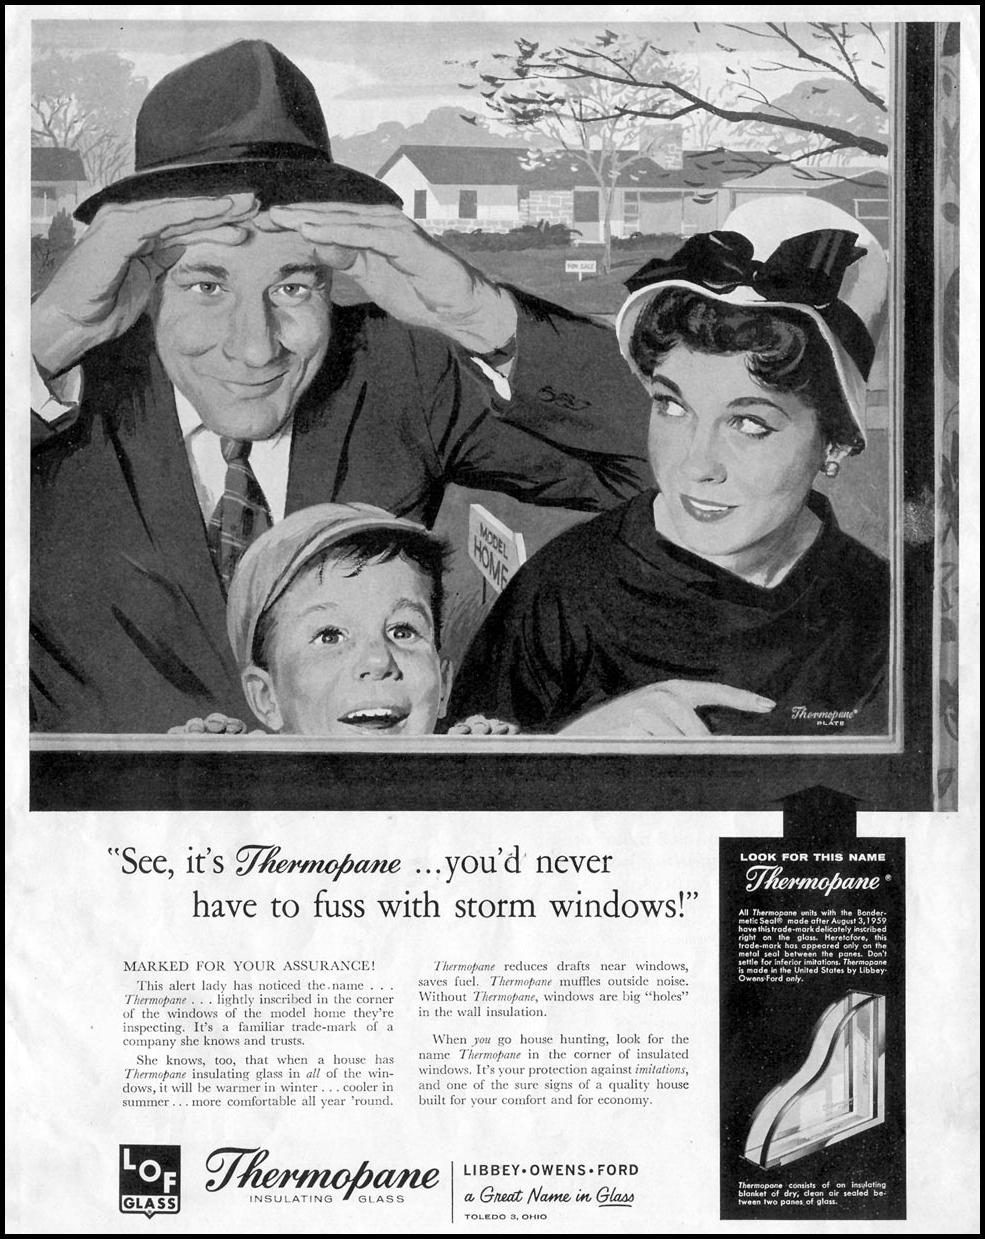 LOF THERMOPANE INSULATING GLASS SATURDAY EVENING POST 08/15/1959